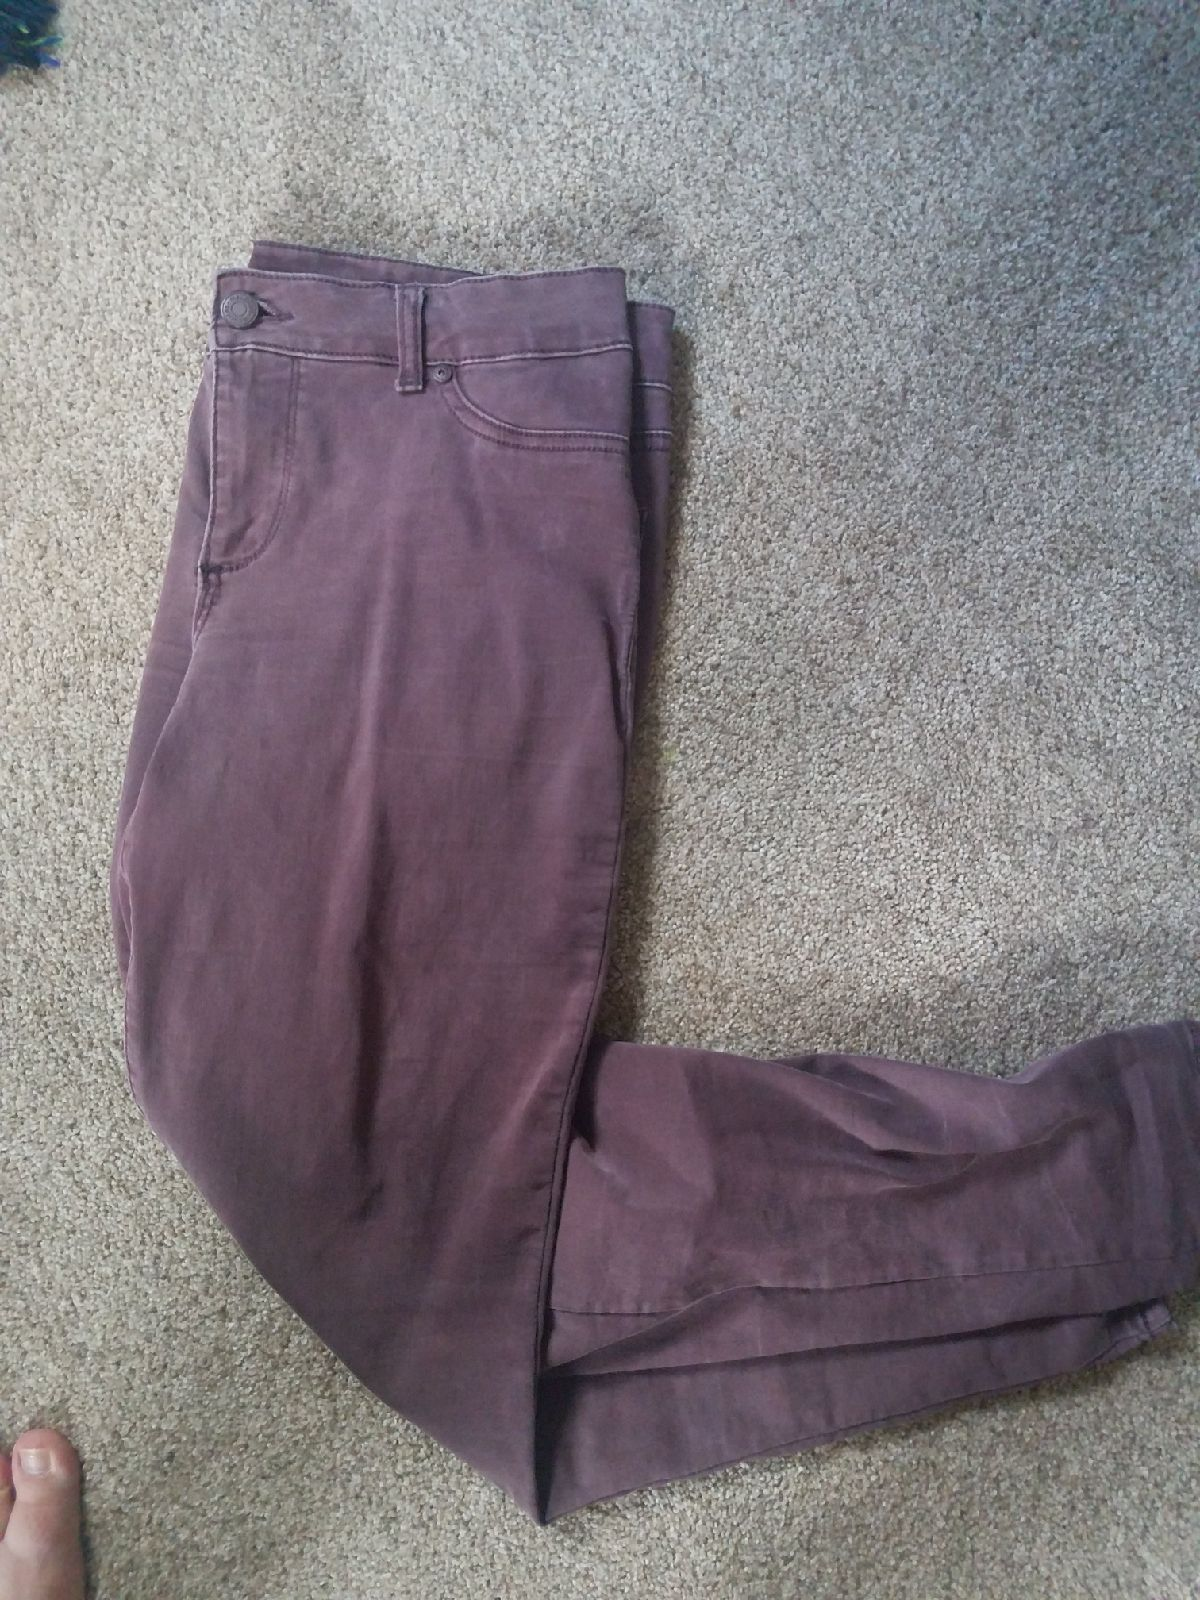 Maurices jeggings sz L